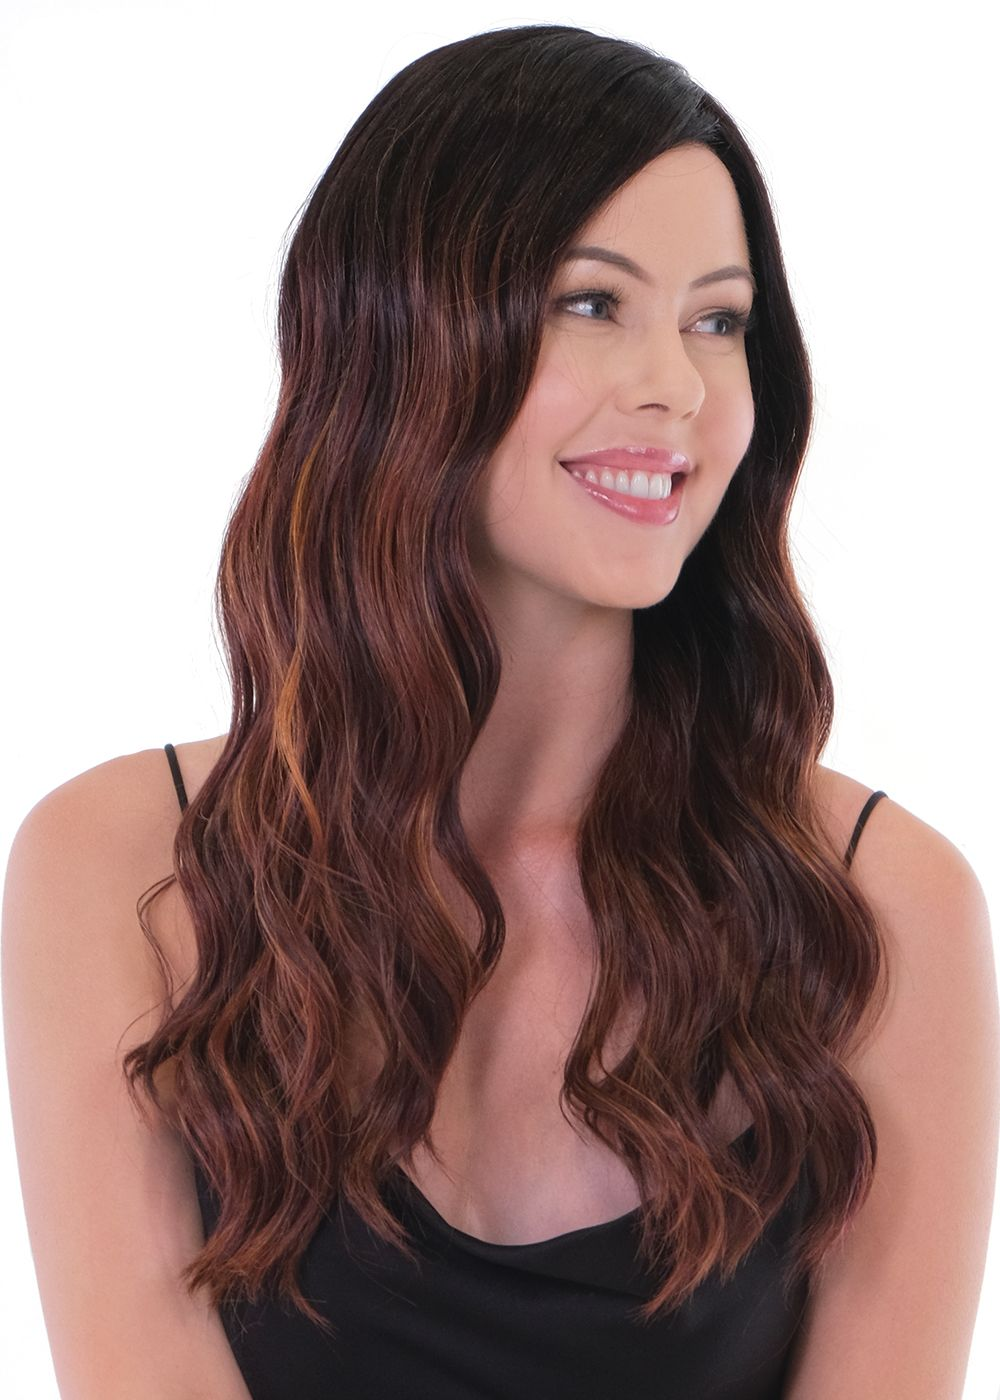 Maxwella 22 Balayage - Café Collection (Monofilament Top) by Belle Tress